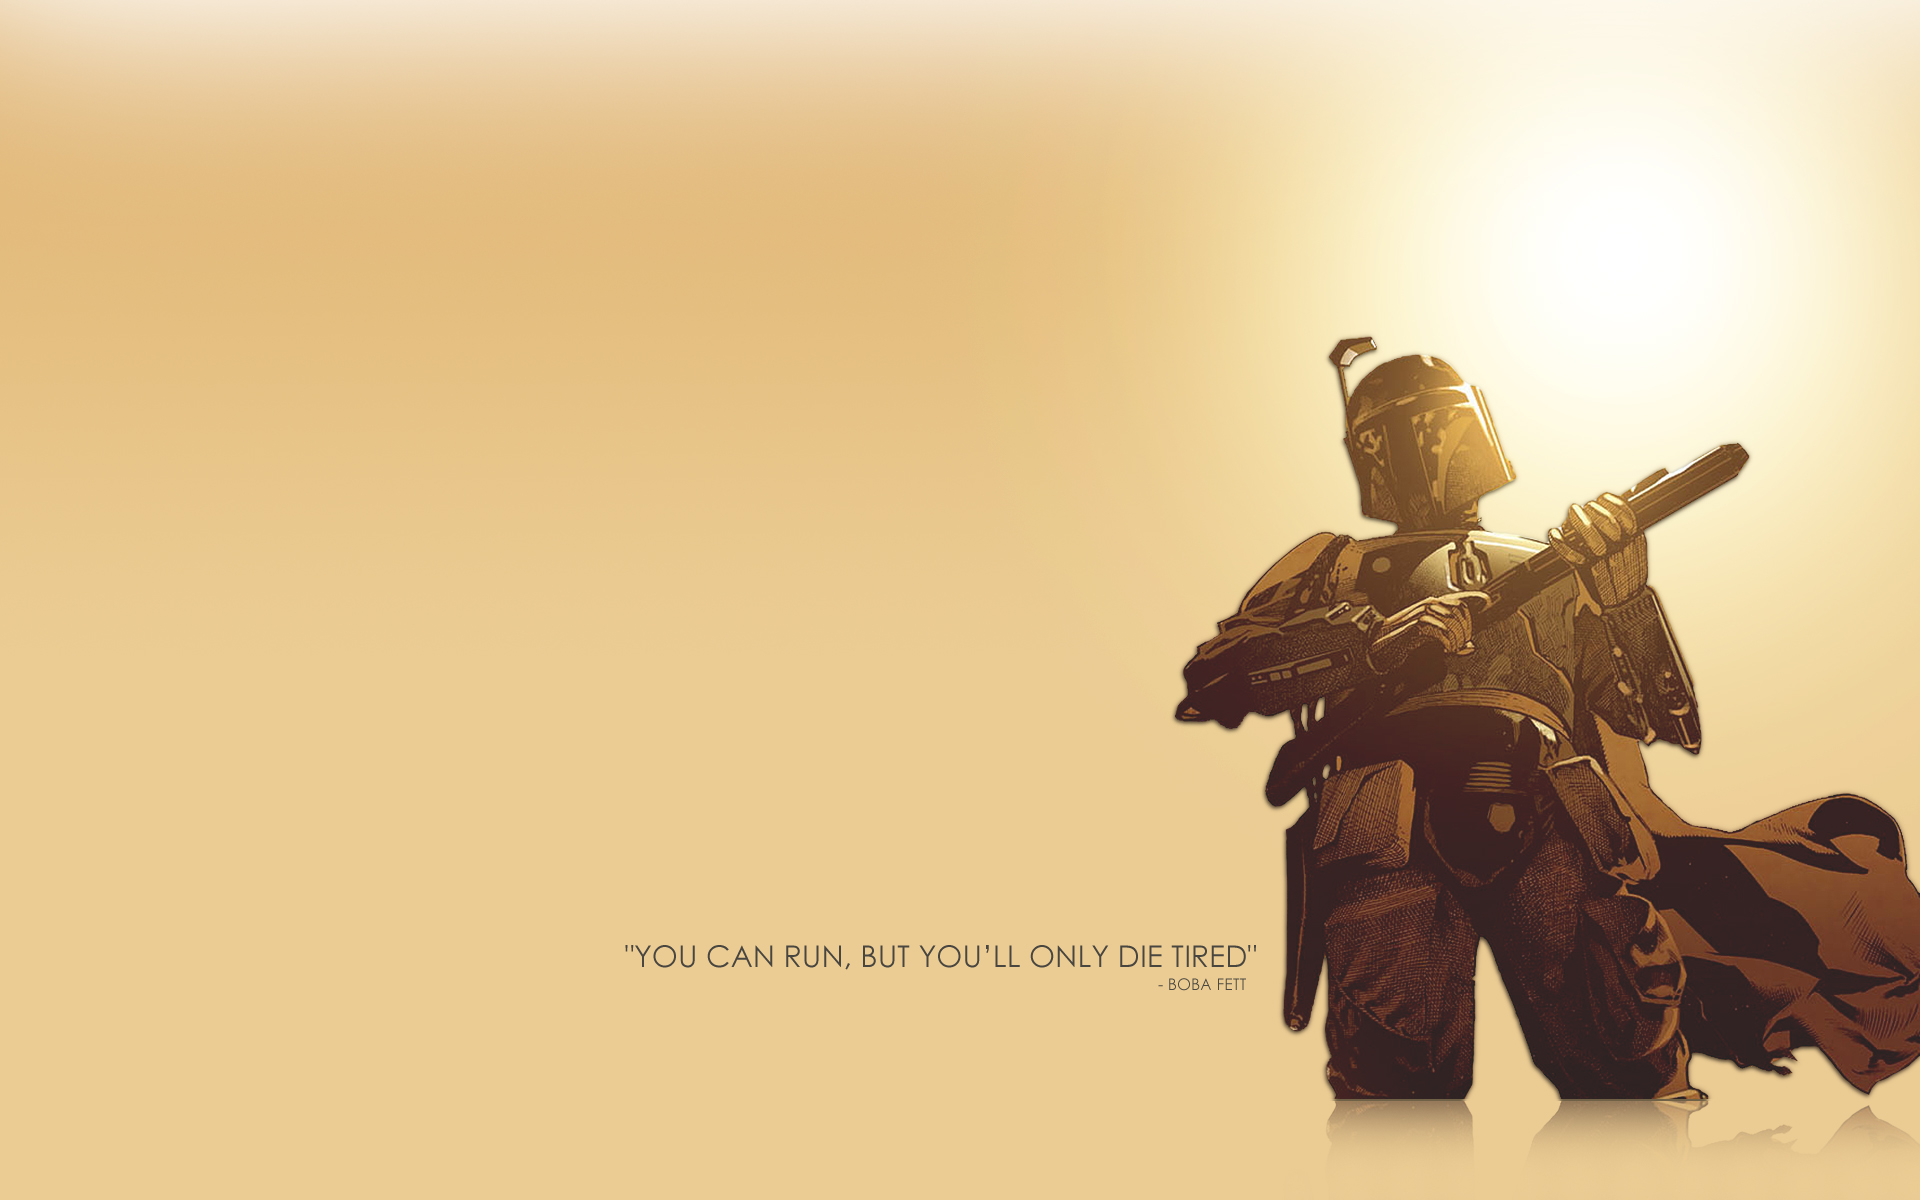 Star wars full hd wallpaper and background image - Star wars quotes wallpaper ...